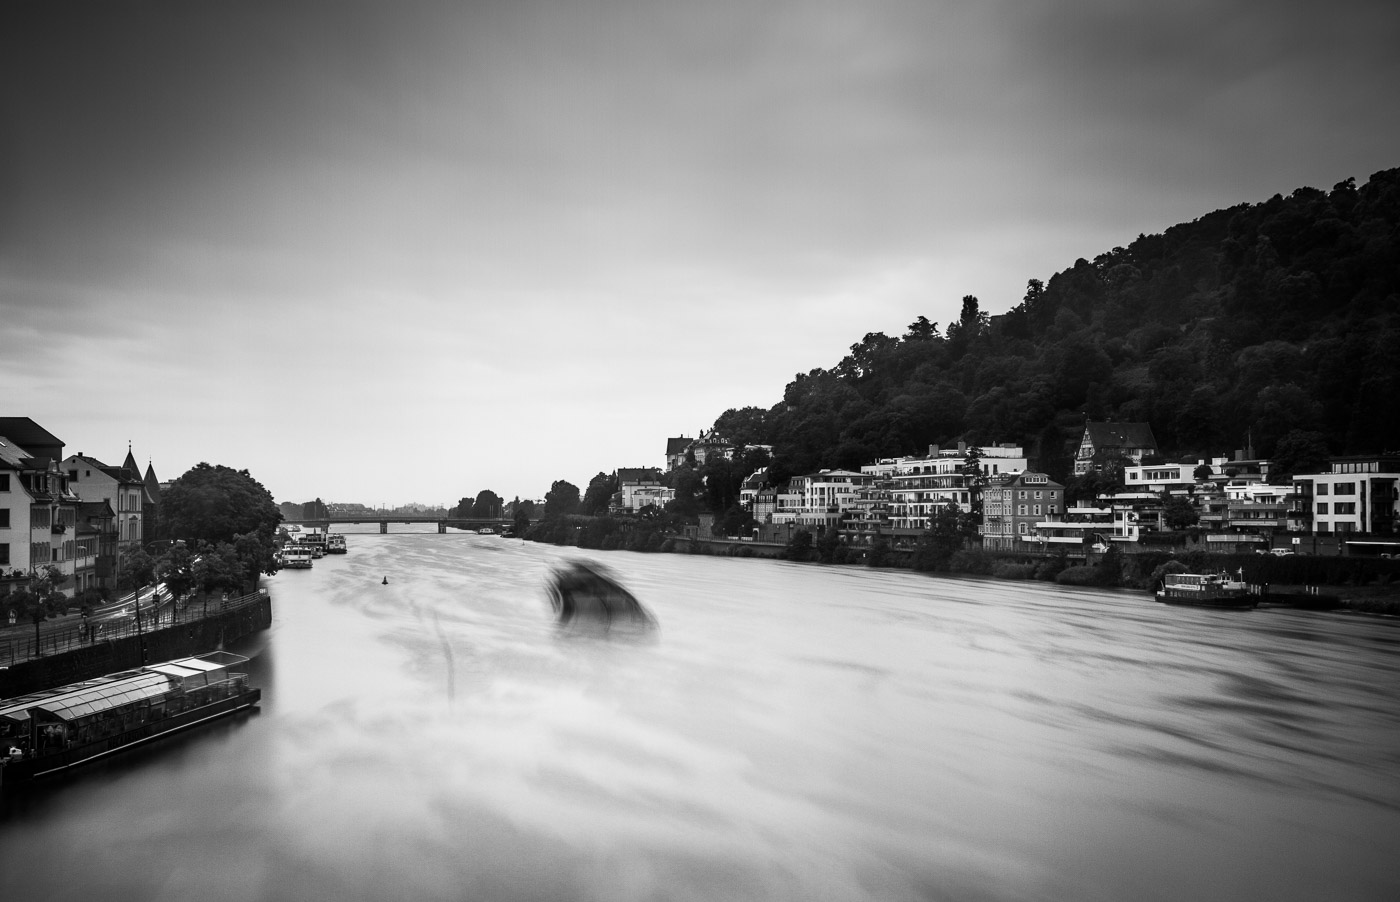 I really wanted to practice my long exposure time photography in a recent work trip to Germany. A 10-stop ND filter and a mini tripod were easy enough to carry in my backpack and an unexpected free day in Heidelberg provided a great setting for photography. What you can't see is me getting absolutely drenched in the pouring rain as I didn't take a rain jacket with me on my work trip.